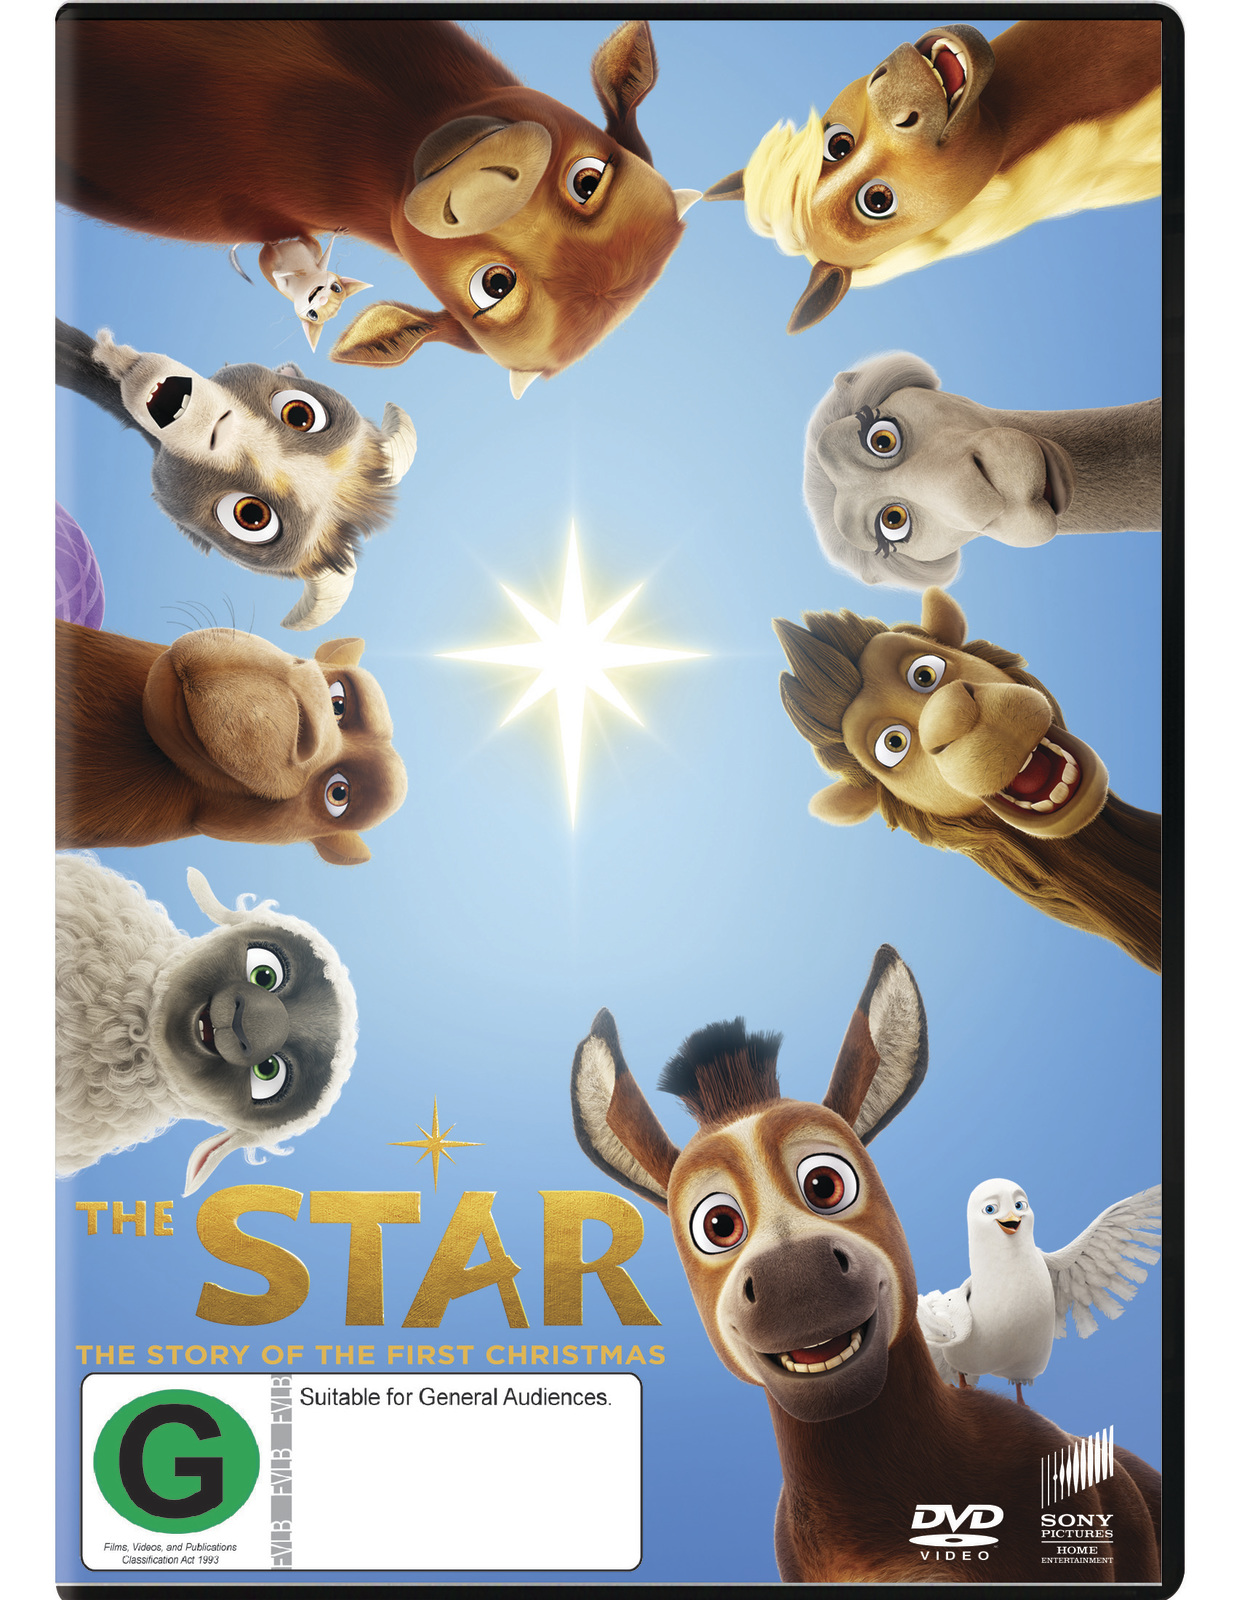 The Star on DVD image